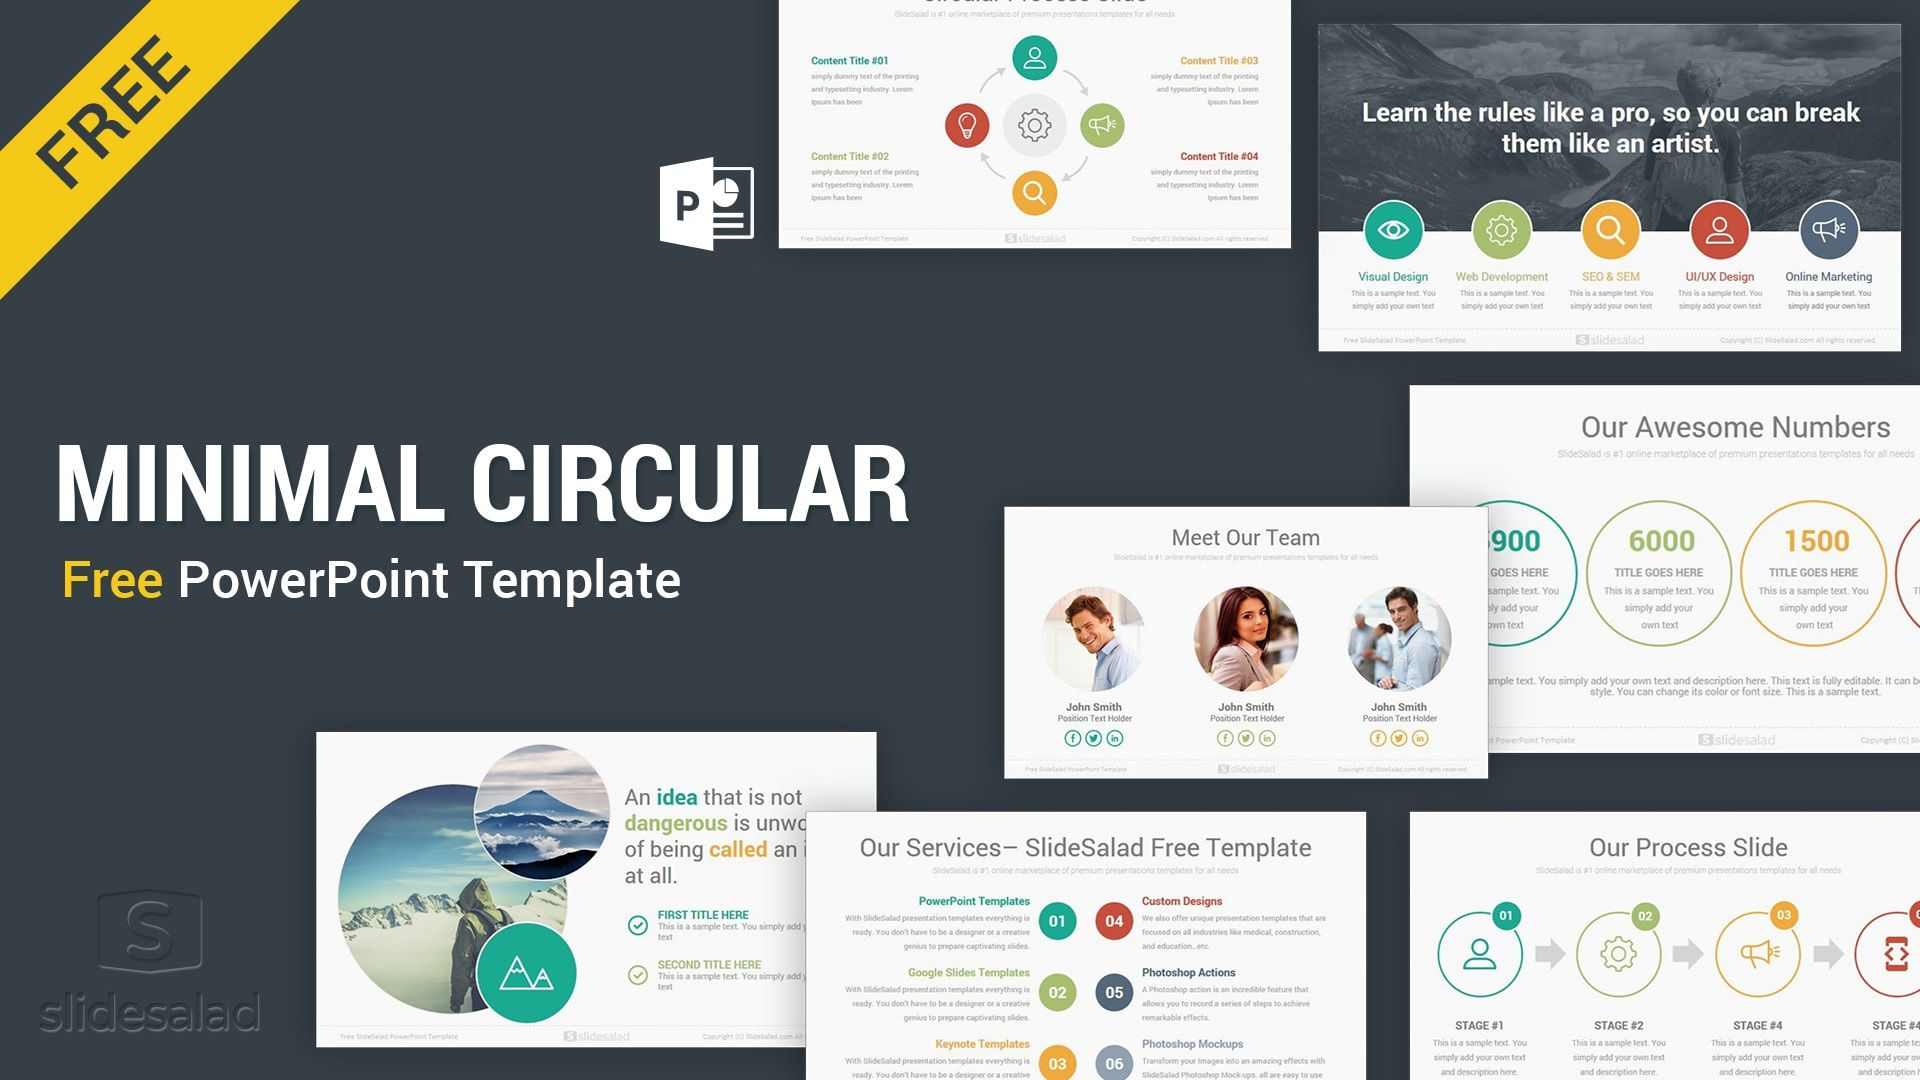 004 Awful Powerpoint Presentation Format Free Download High Resolution  Influencer Template Company Ppt SampleFull